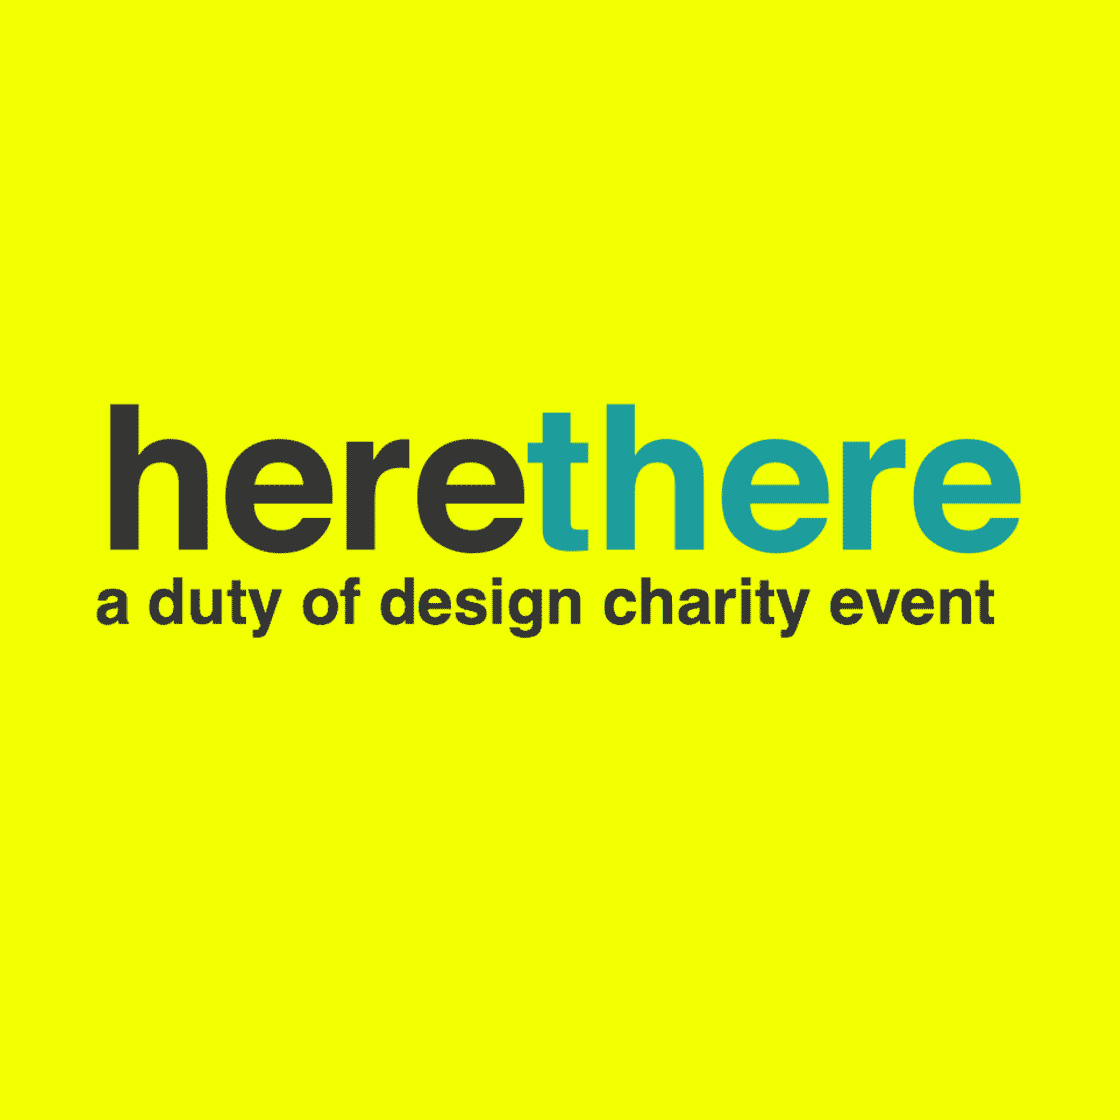 <strong>UI/UX & Development</strong>. The Duty of Designs is a collaborative effort to bring awareness for good causes overseas. Their HereThere event in Atlanta encouraged fundraising for water filters in Nicaragua. Instagram API was used to feature tagged photos on the site while an infographic wall displayed statistics based on water quality.